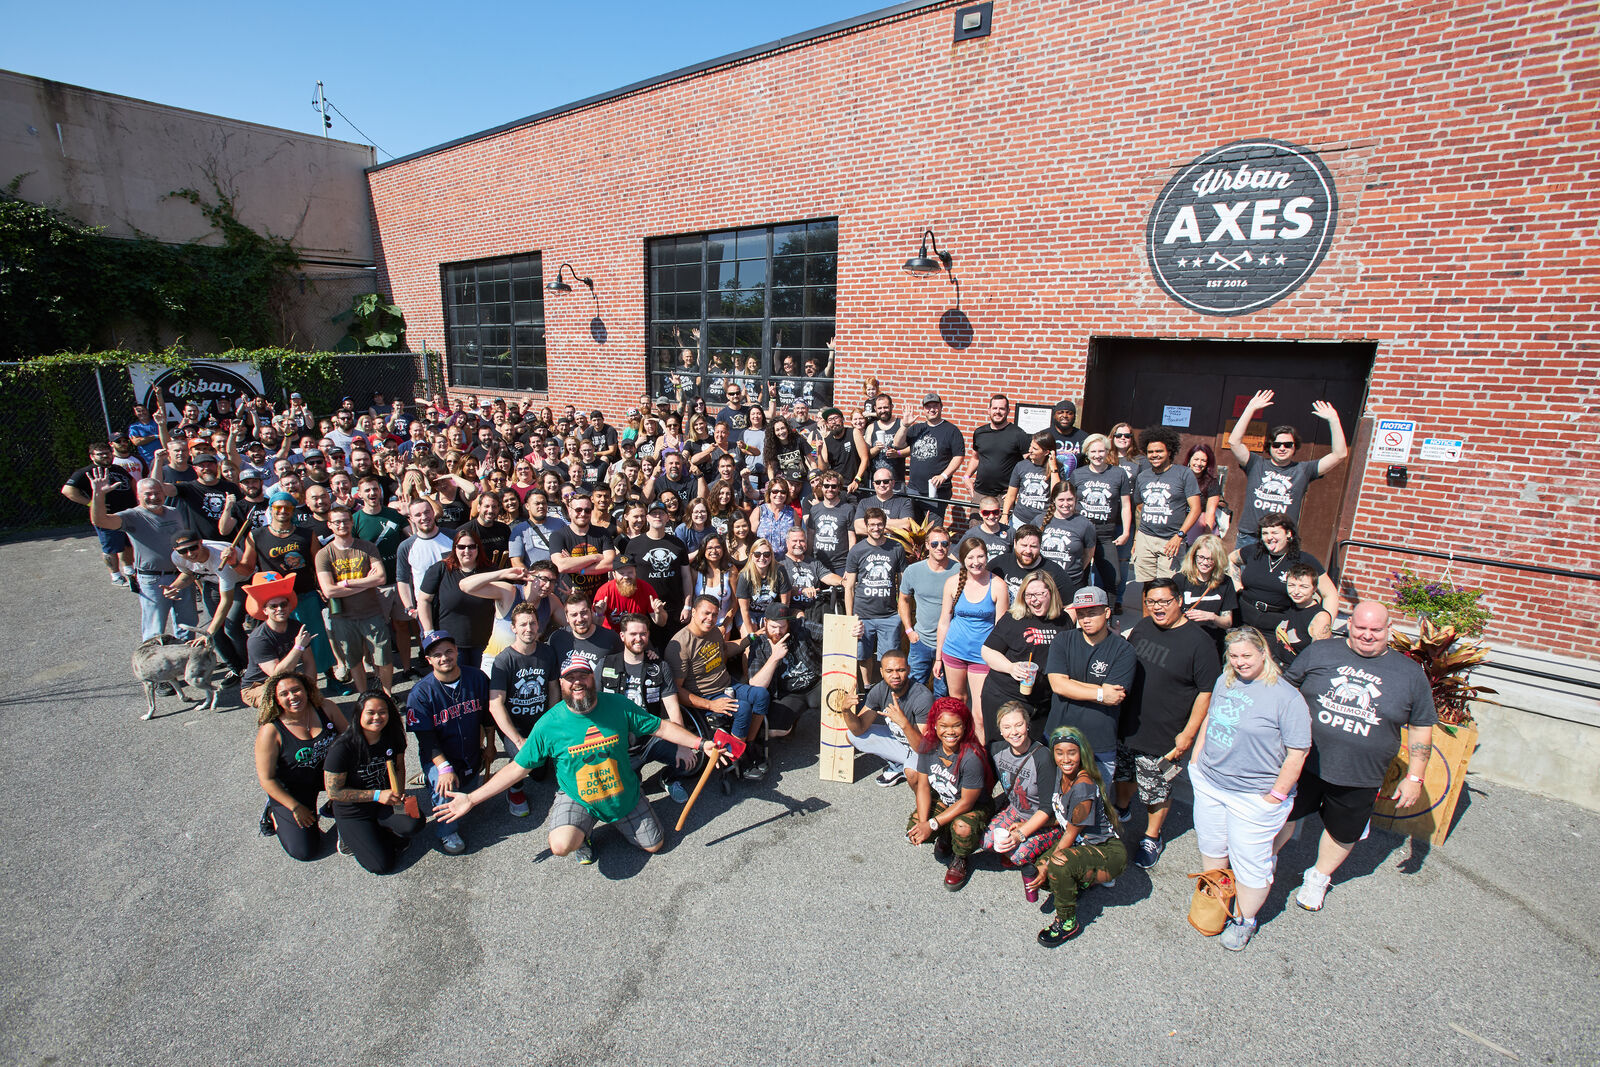 A zoomed out photo of all the participants of the 2019 Urban Open outside of Urban Axes Baltimore